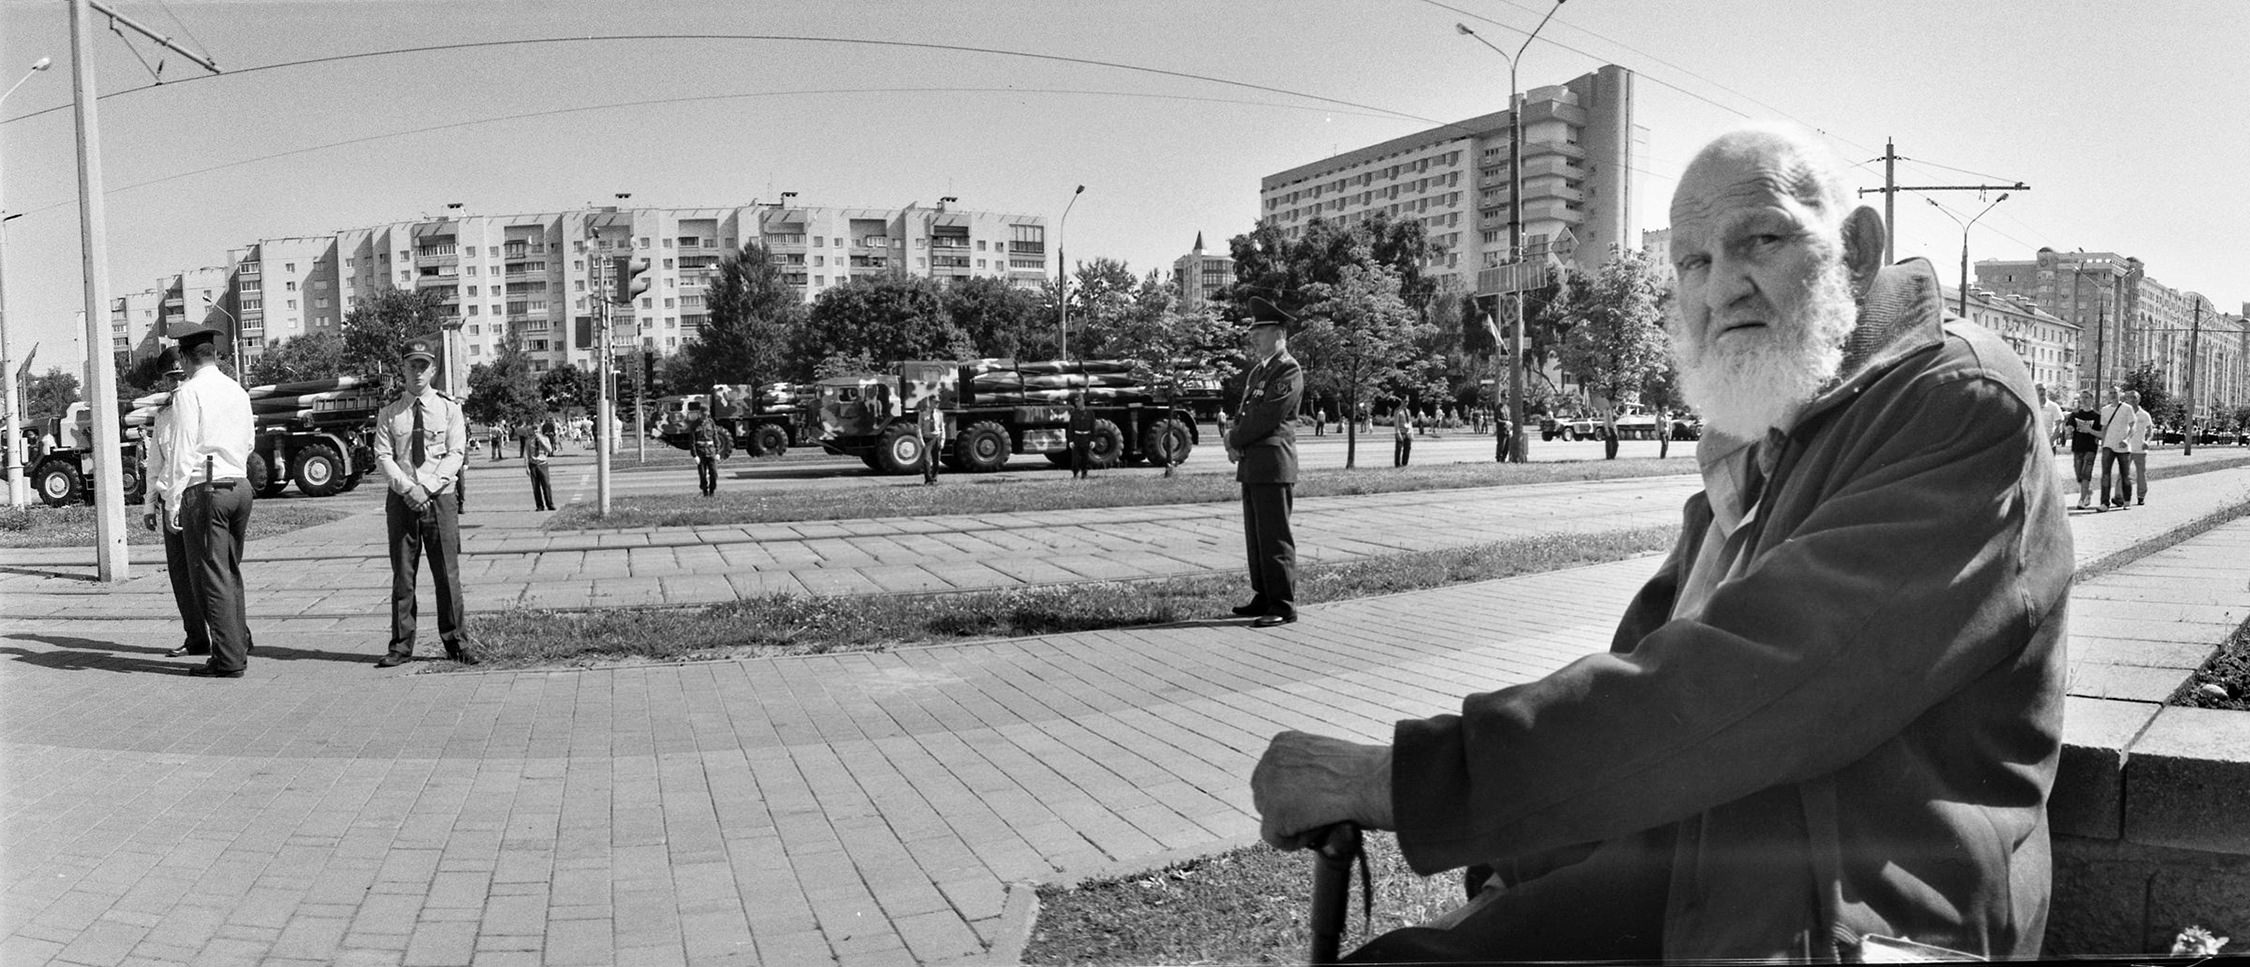 Black-white street portrait of an old veteran watching military parade with armored vehicles in the center of Minsk city, Belarus © Alexander Kladov